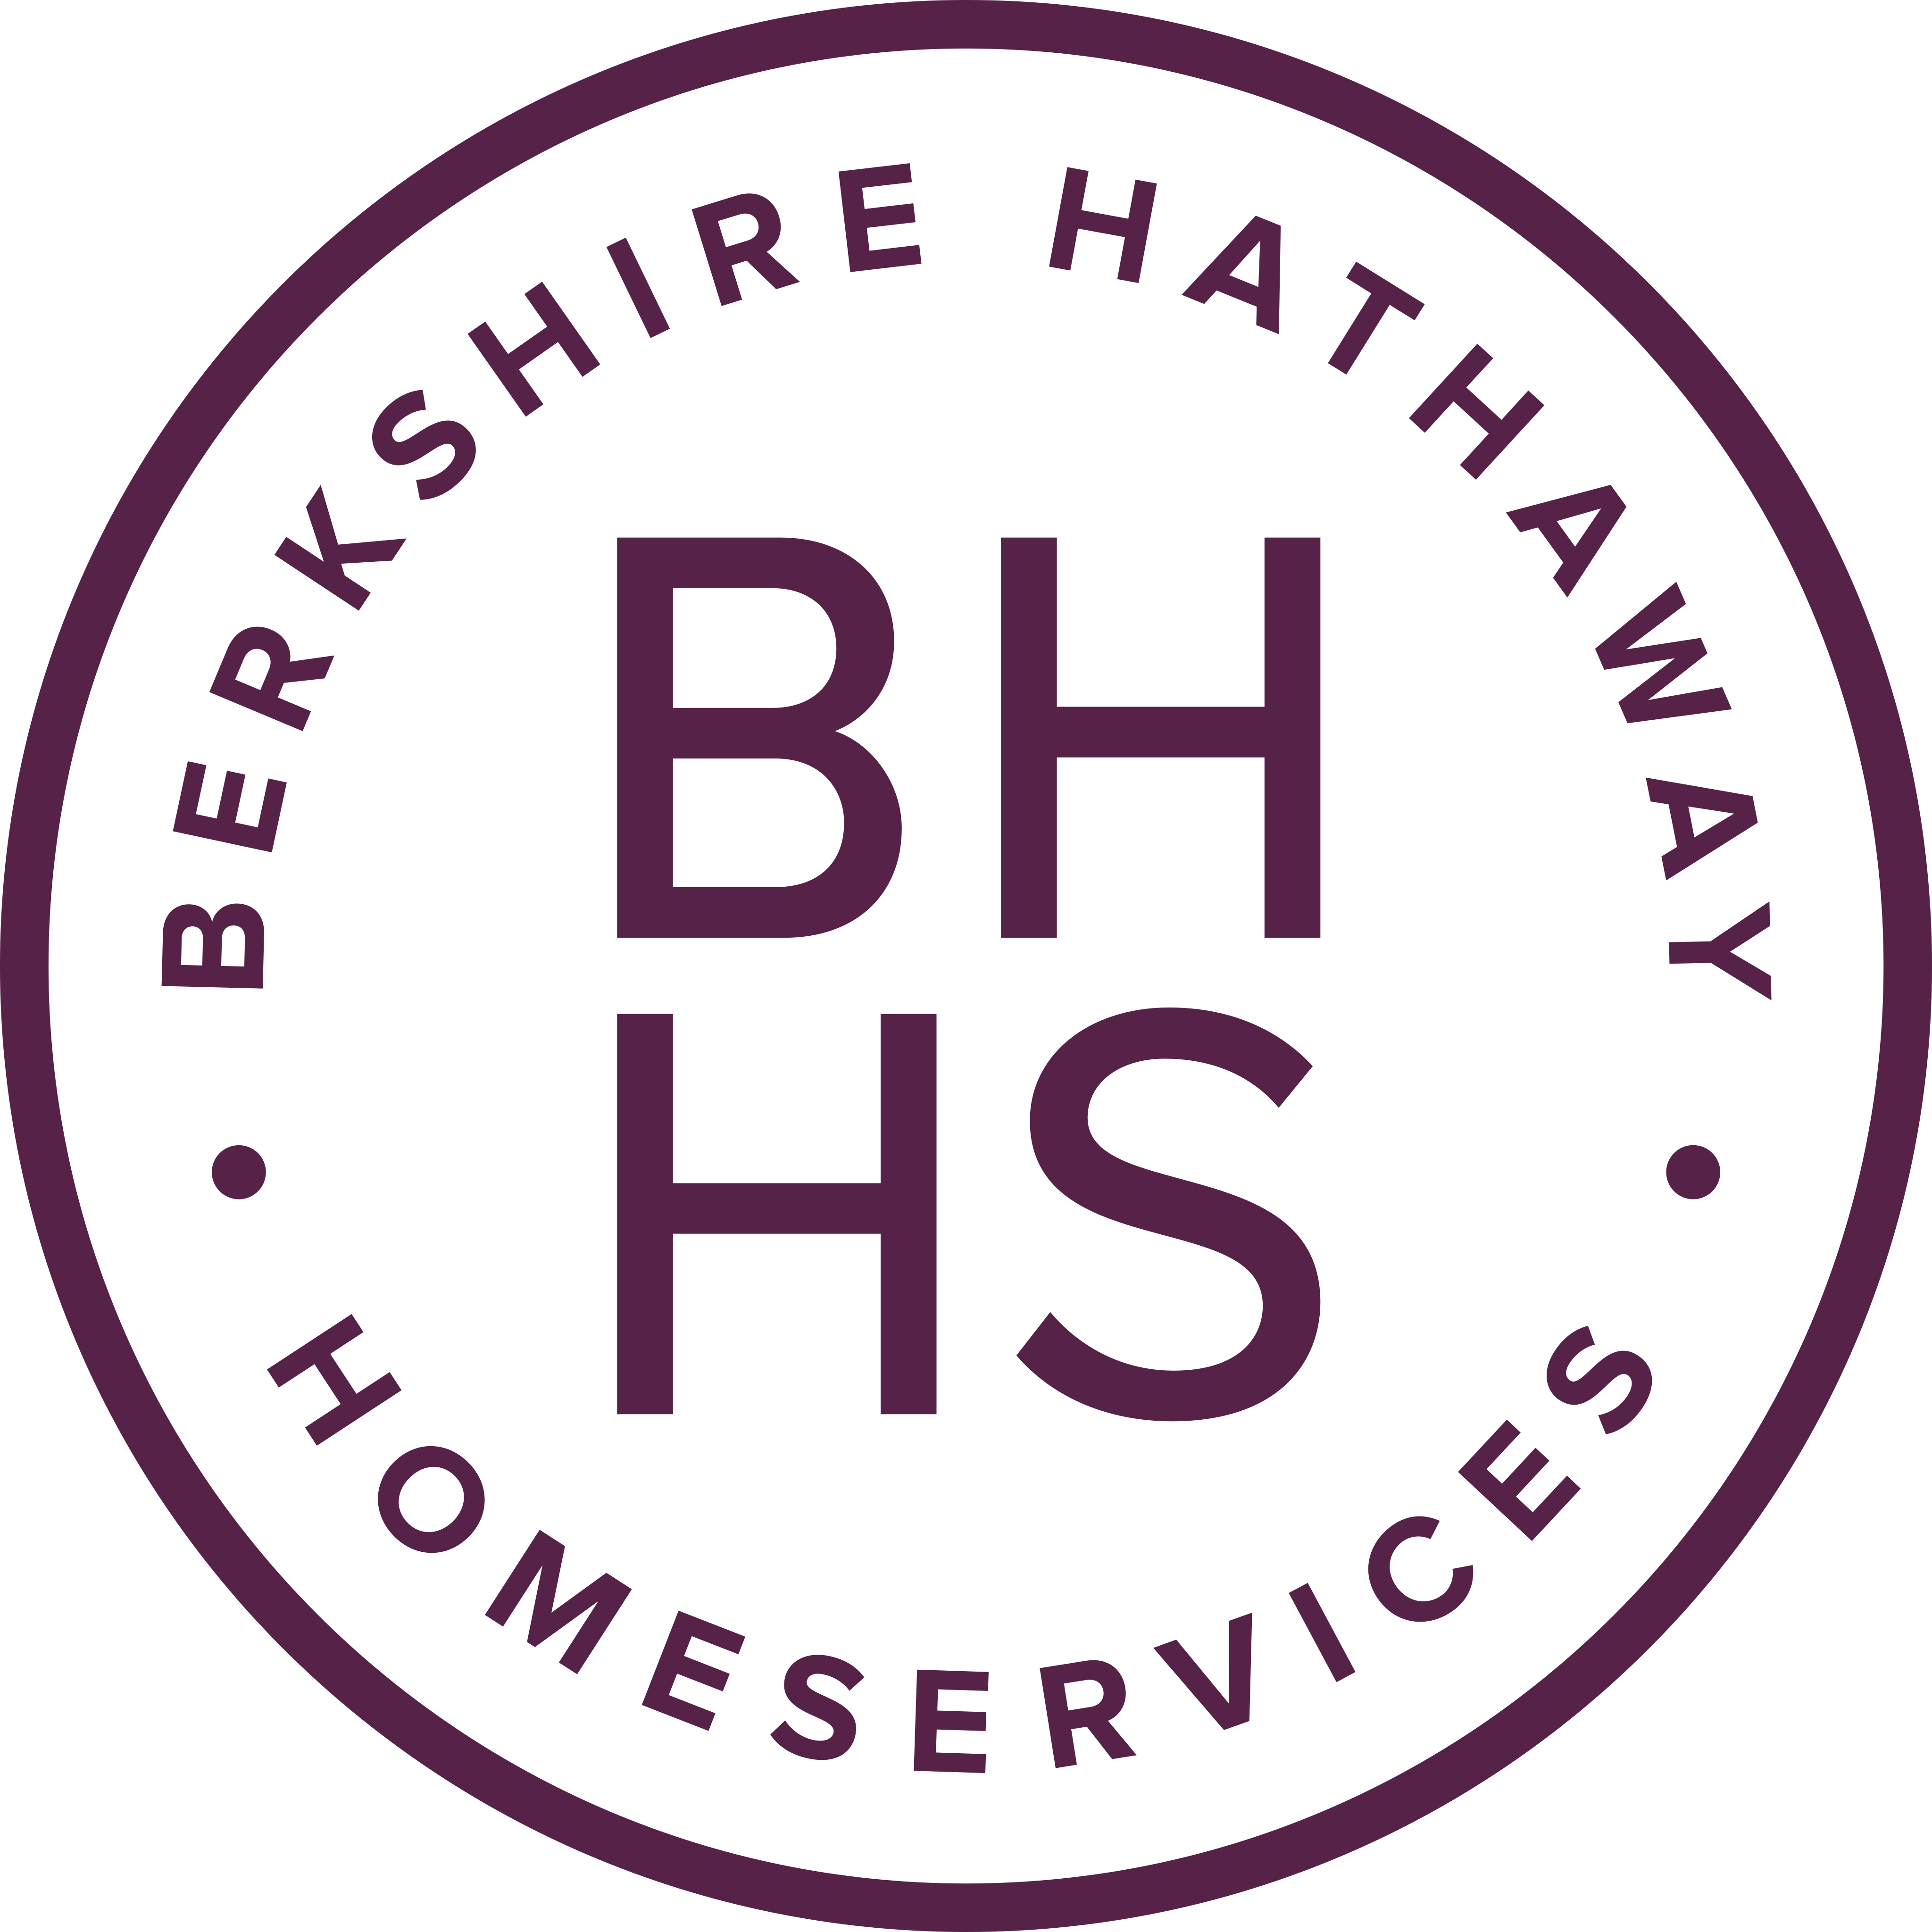 berkshire hathaway home services logo 1 - Berkshire Hathaway HomeServices Logo